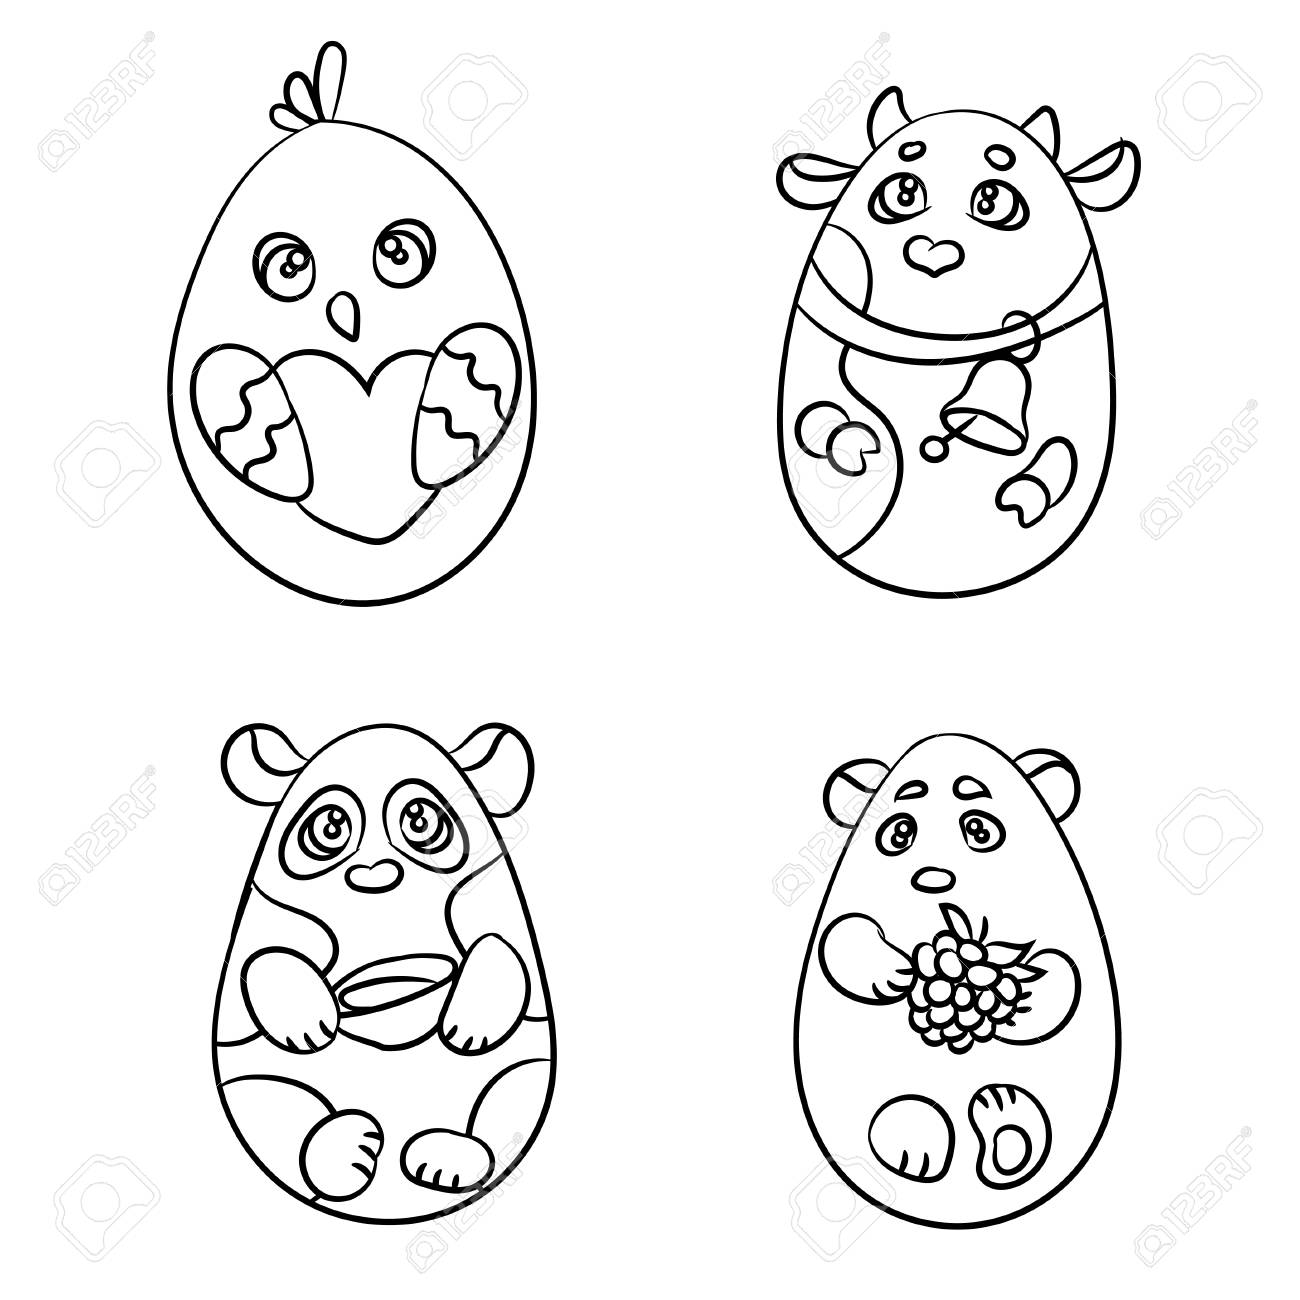 Coloring page set of 4 cute animals in a shape of easter egg there are